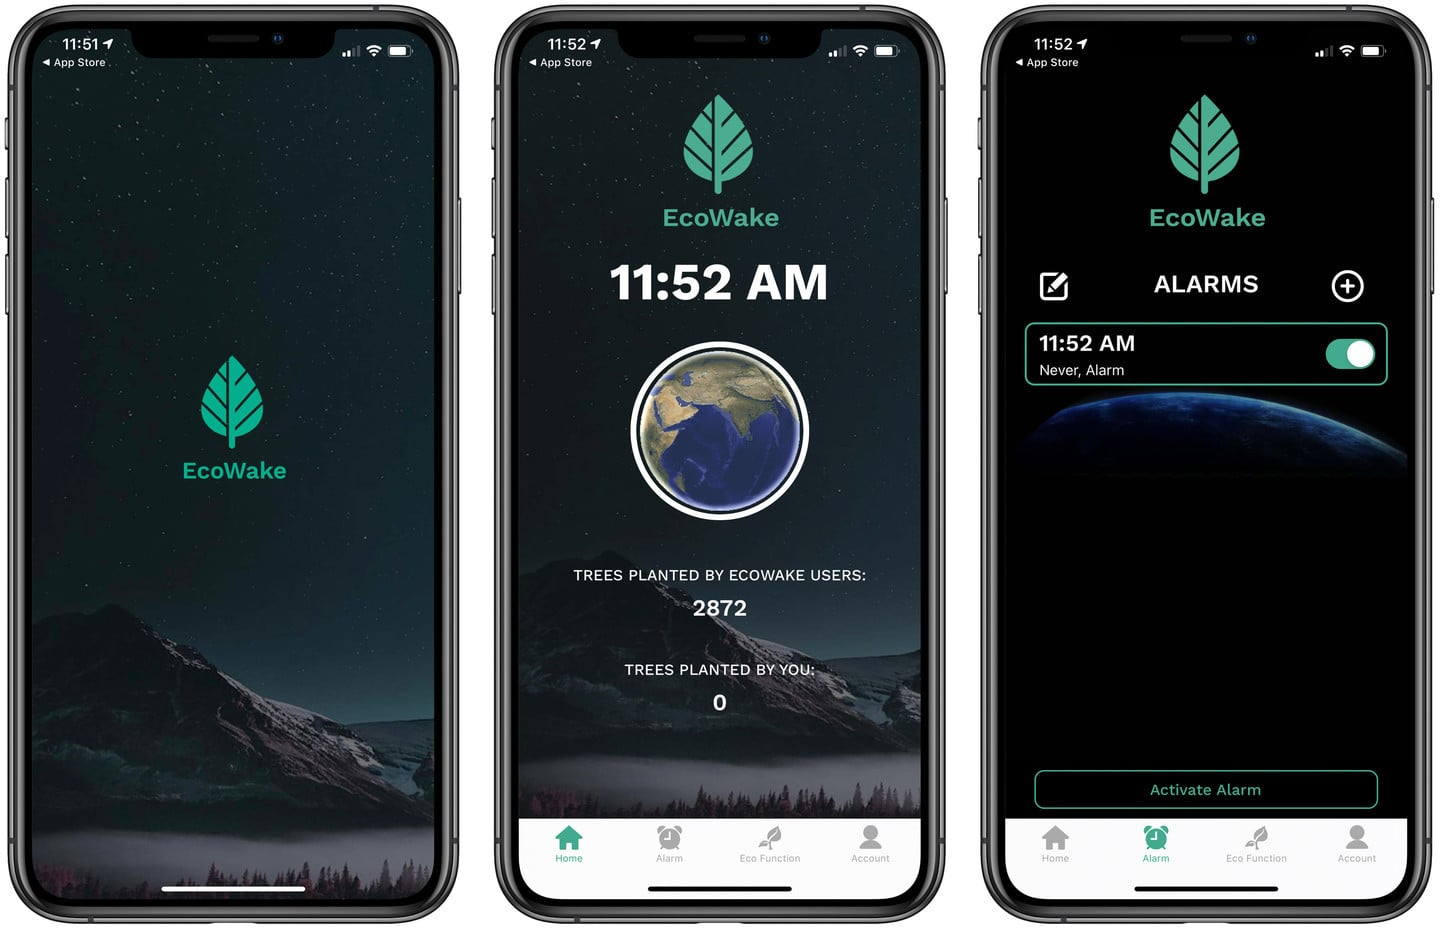 Waking Up on Time Takes on New Meaning Using the Alarm Clock App EcoWake